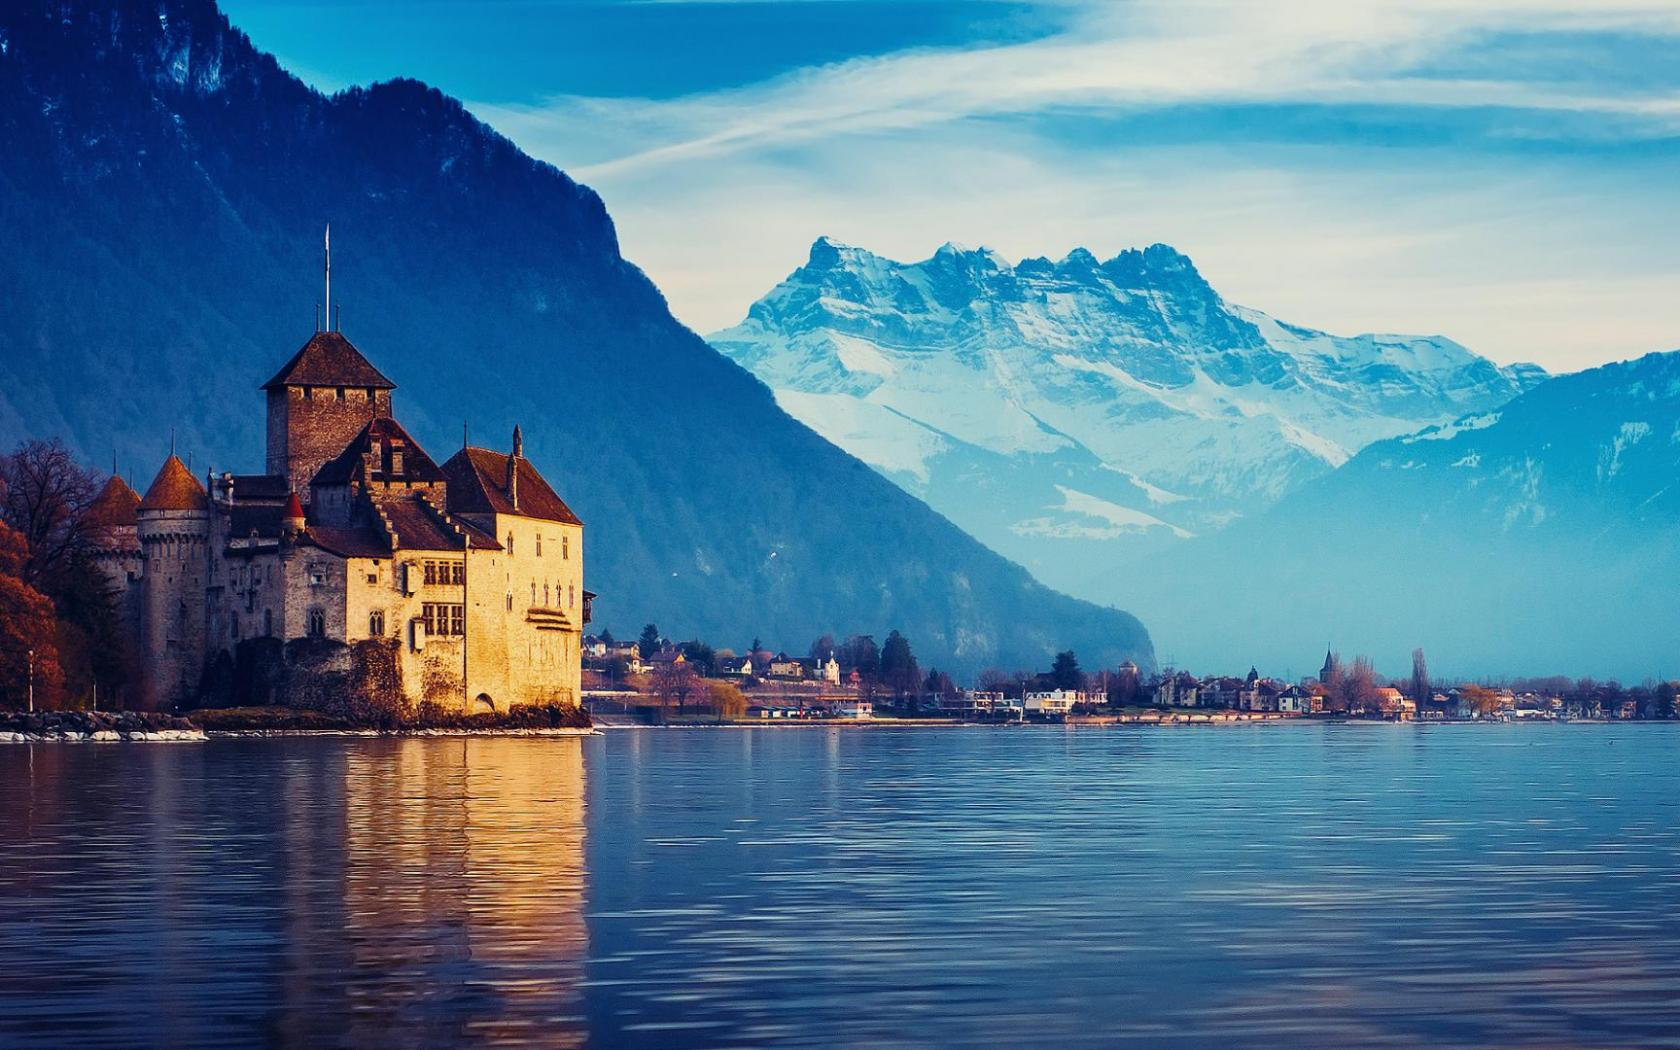 The Villages of Mont Blanc